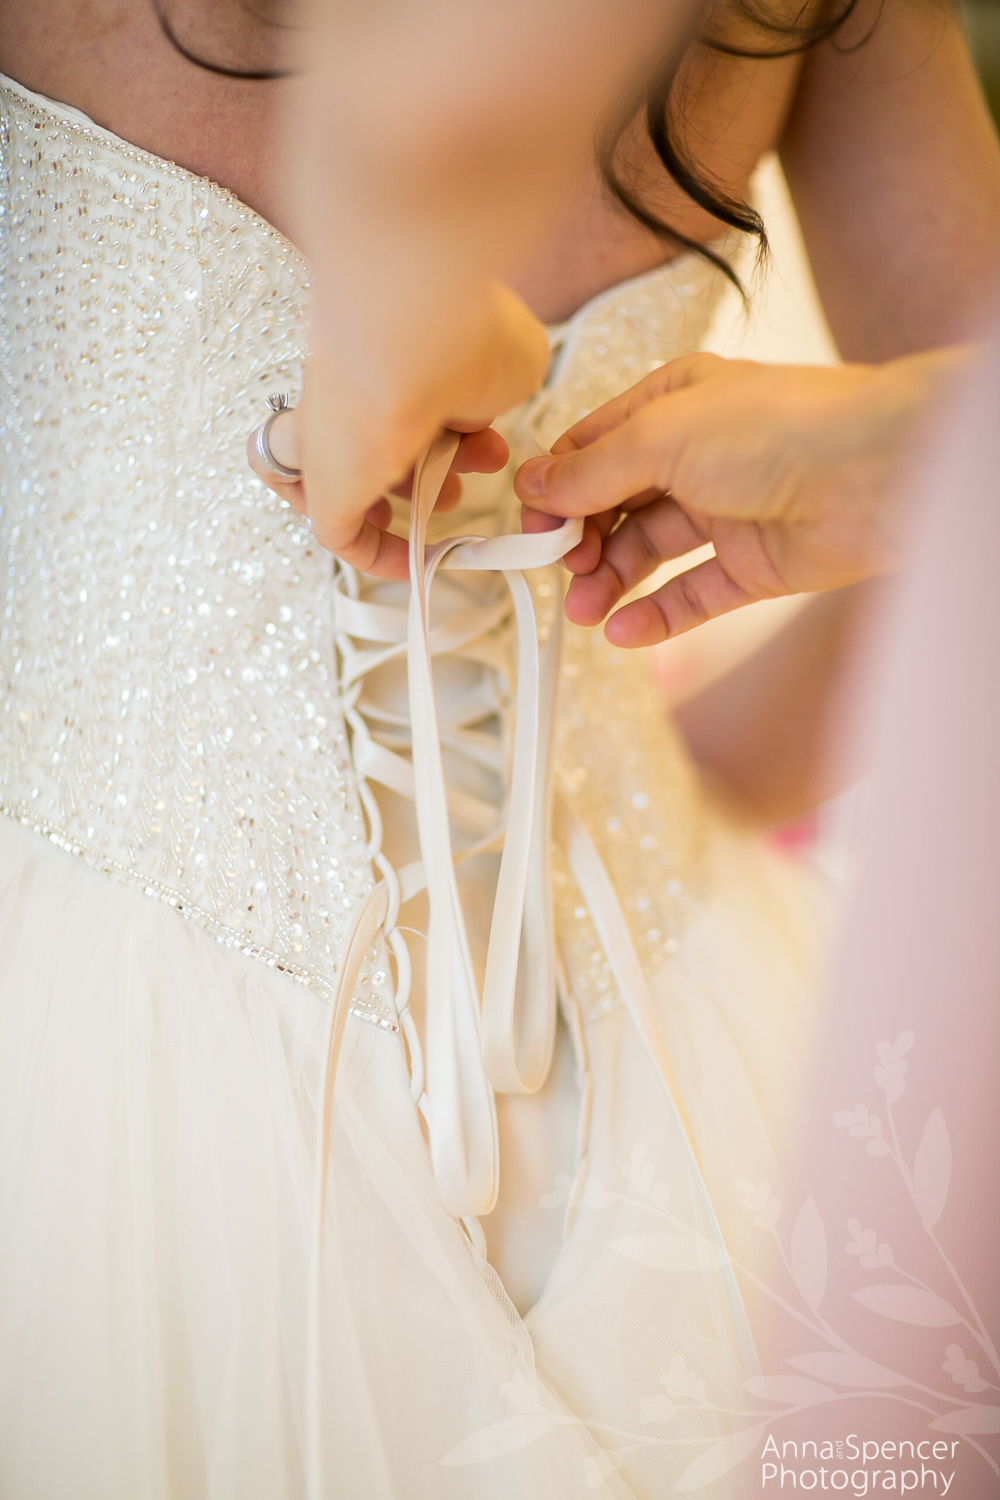 Lacing up a wedding dress corset